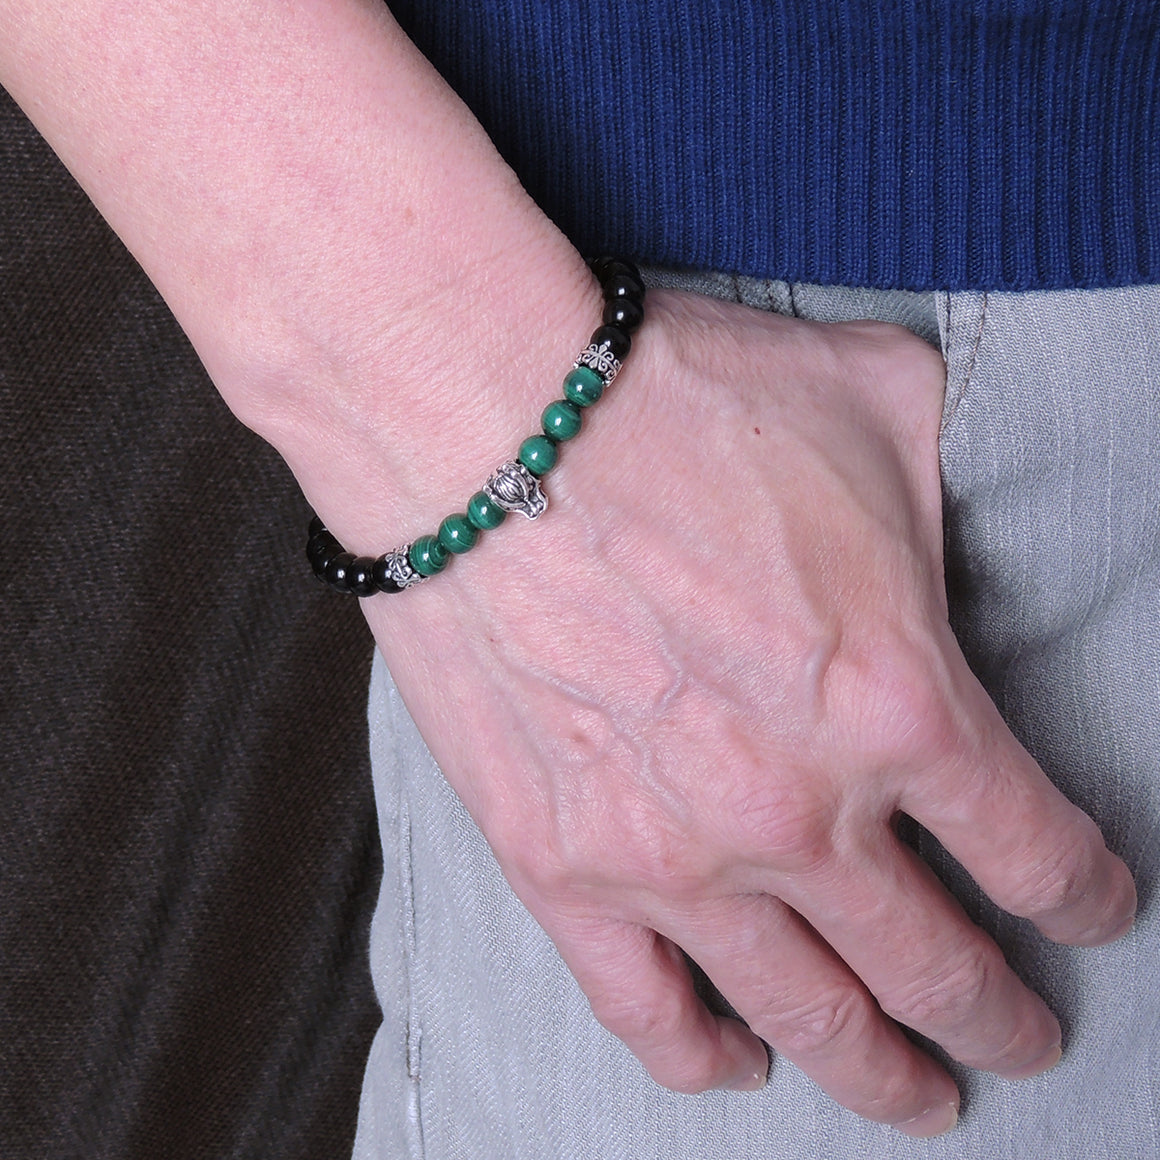 Handmade Wolf Braided Bracelet - 6mm Malachite & Rainbow Black Obsidian Gemstones, Adjustable Drawstring, S925 Sterling Silver Beads BR1554